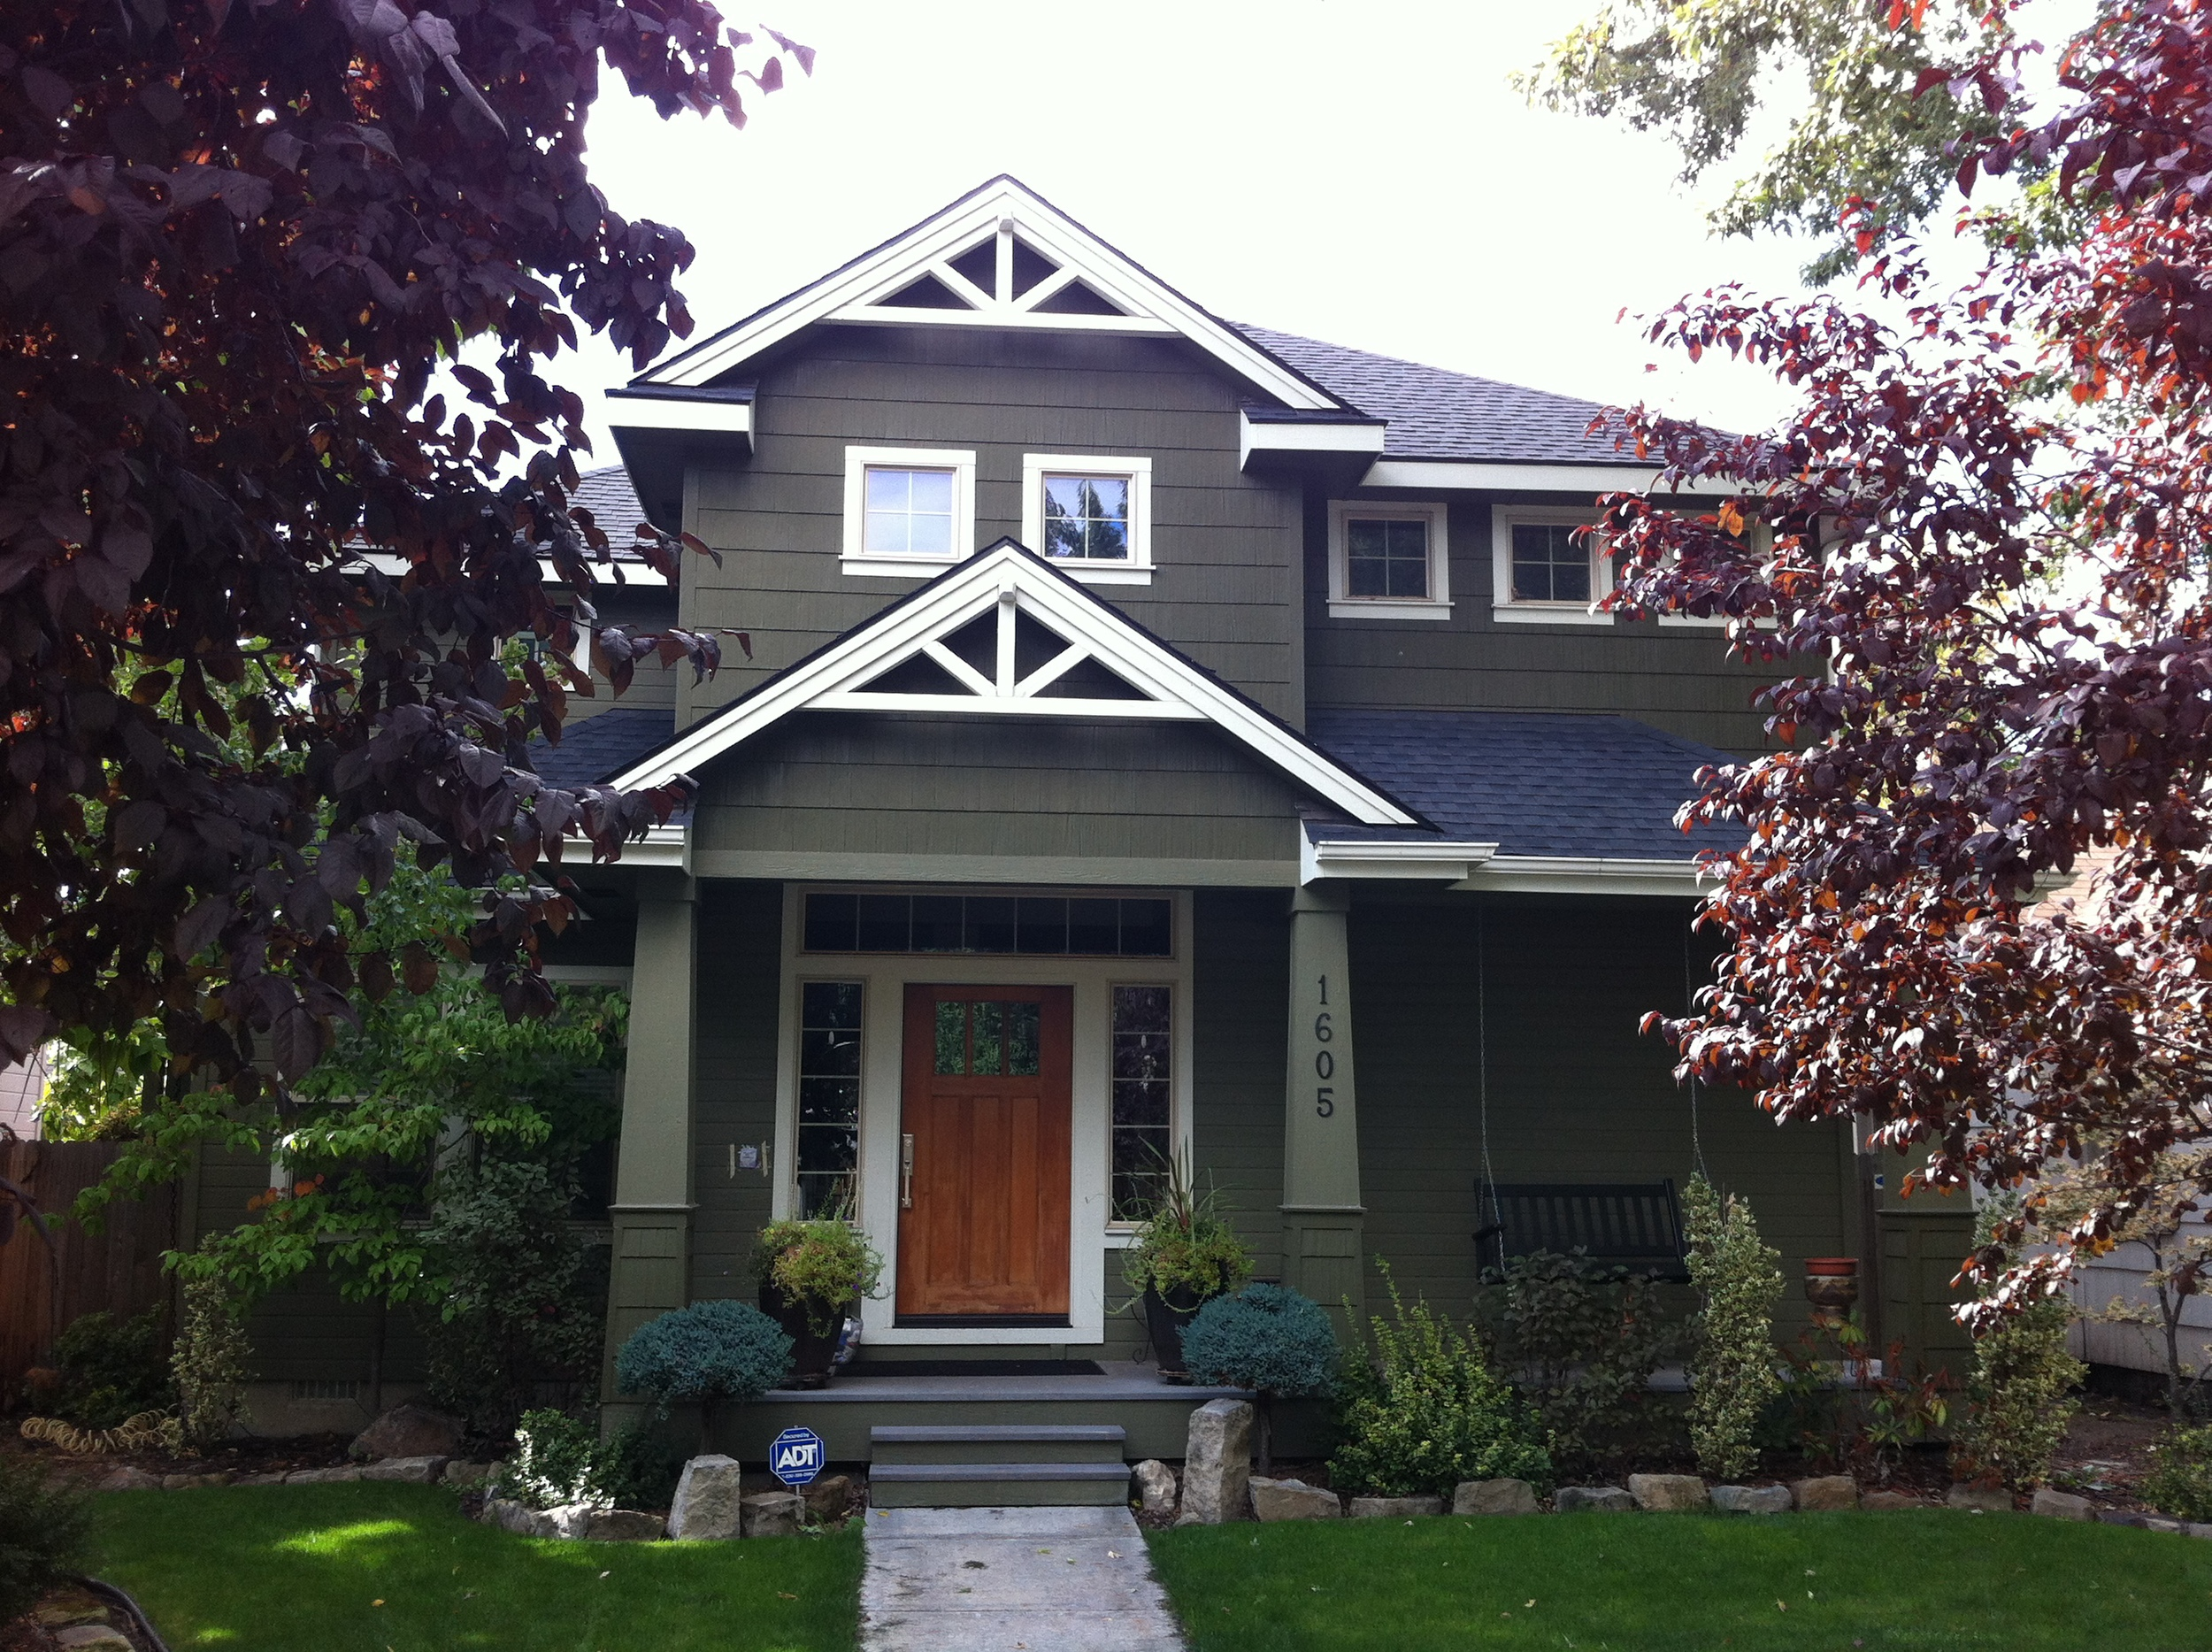 One of the many historic homes in Boise's north end.